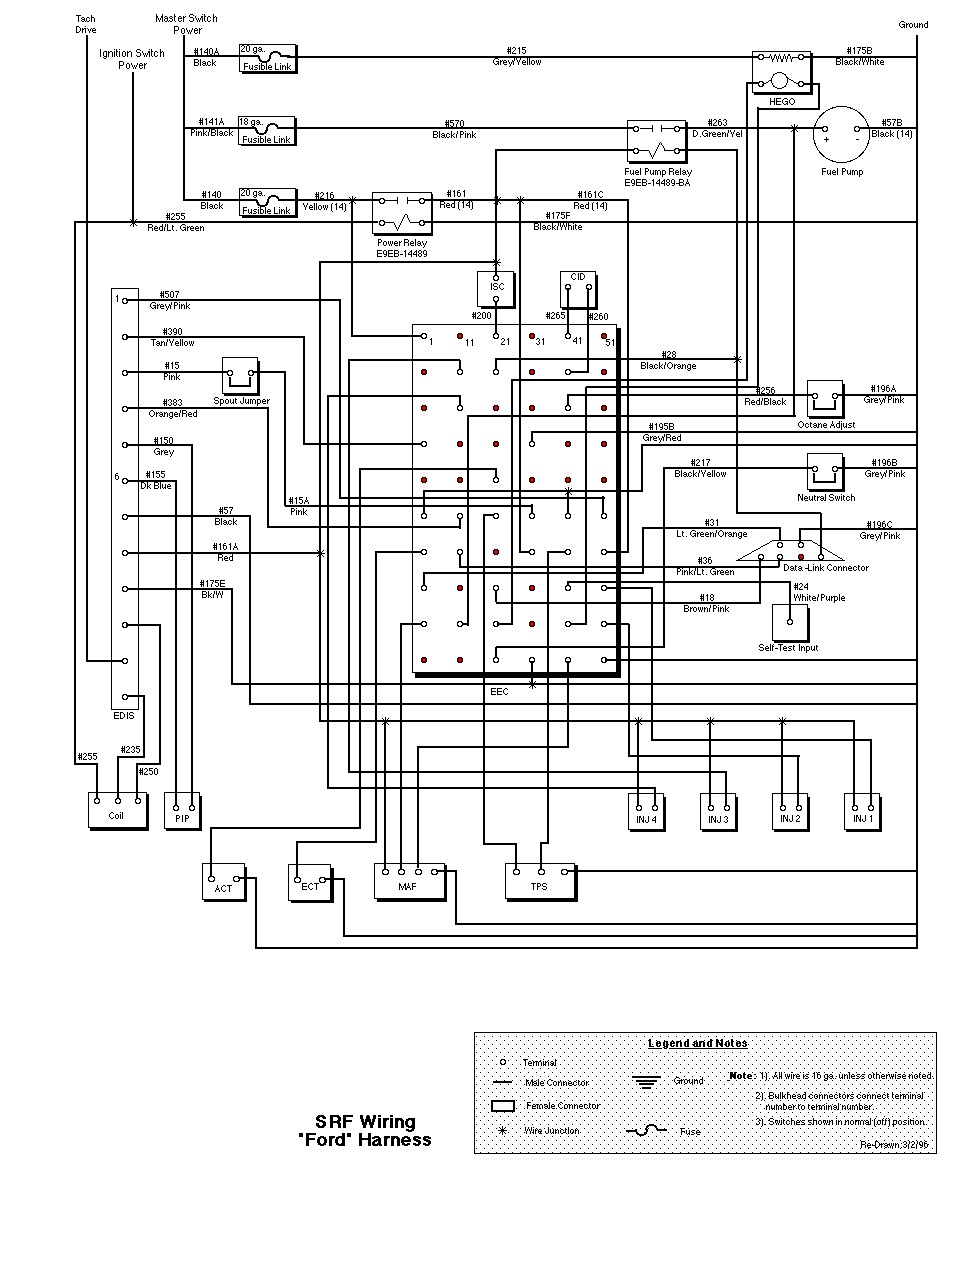 Ford Ln8000 Wiring Schematic Ford F650 Wiring Schematic